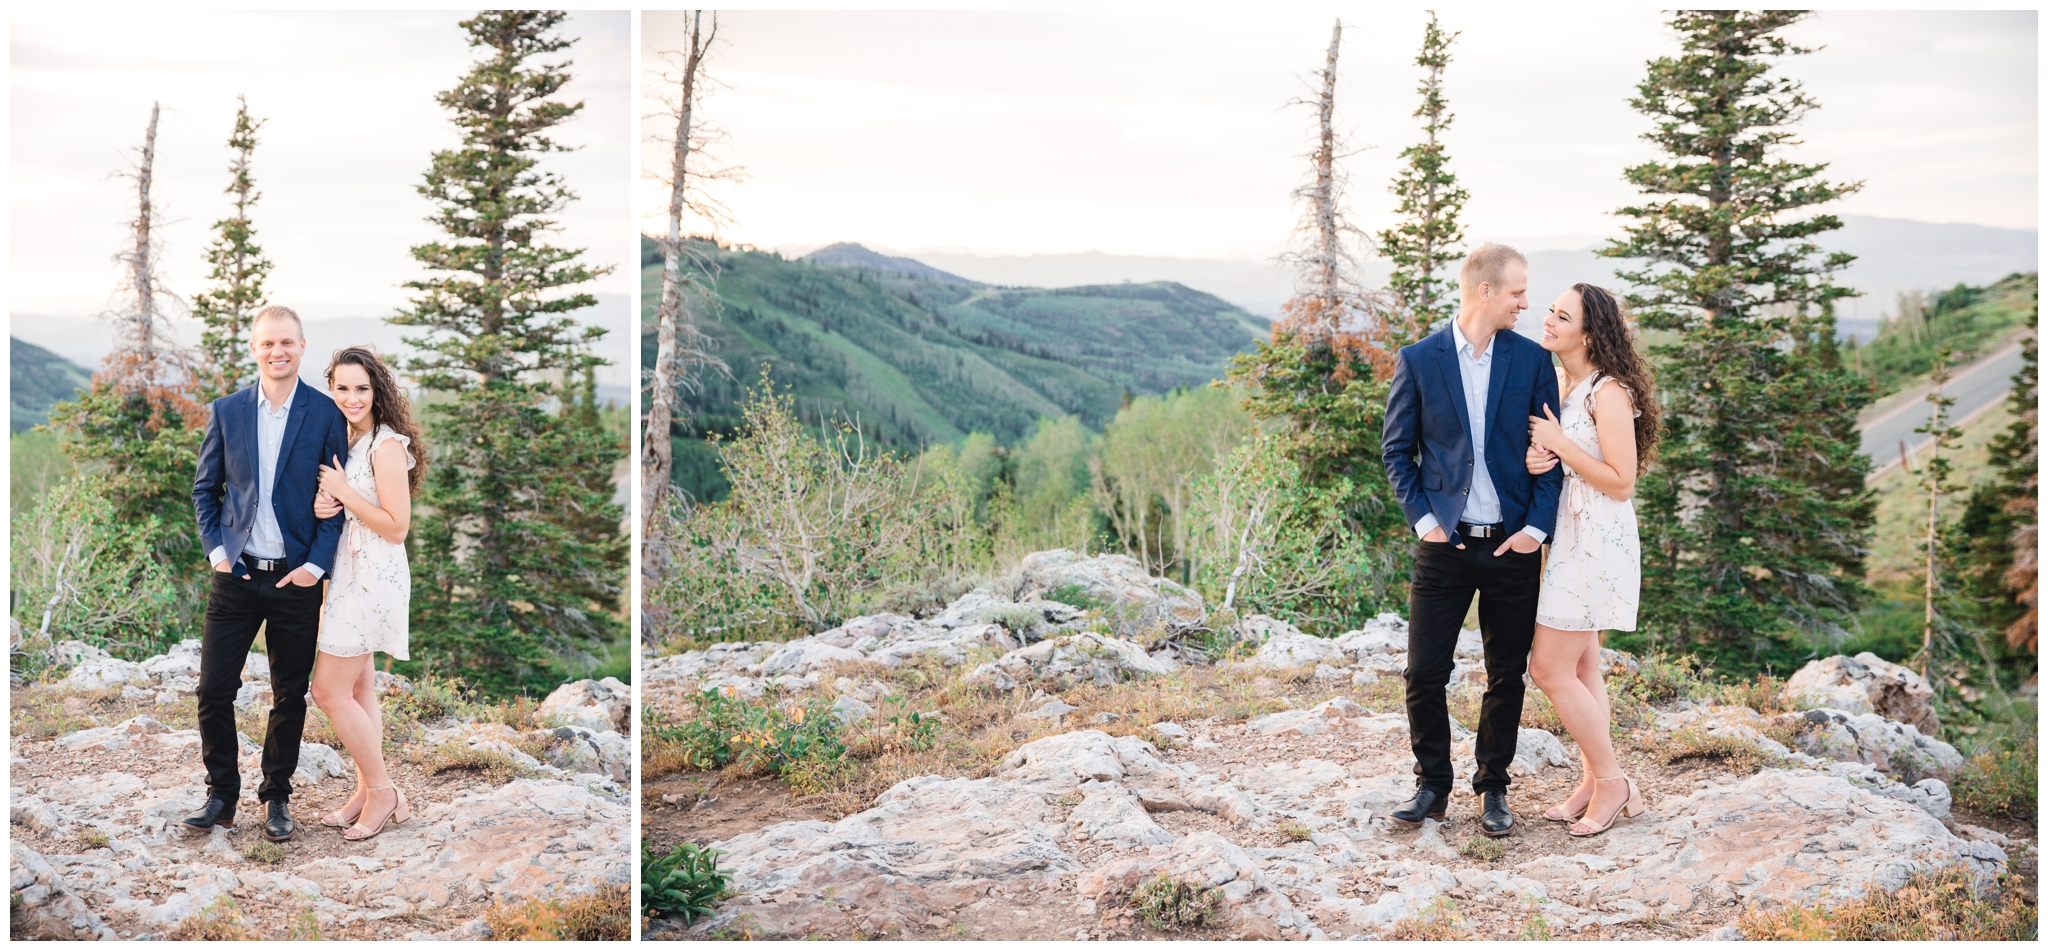 Park City Engagements near the pine trees and mountainside